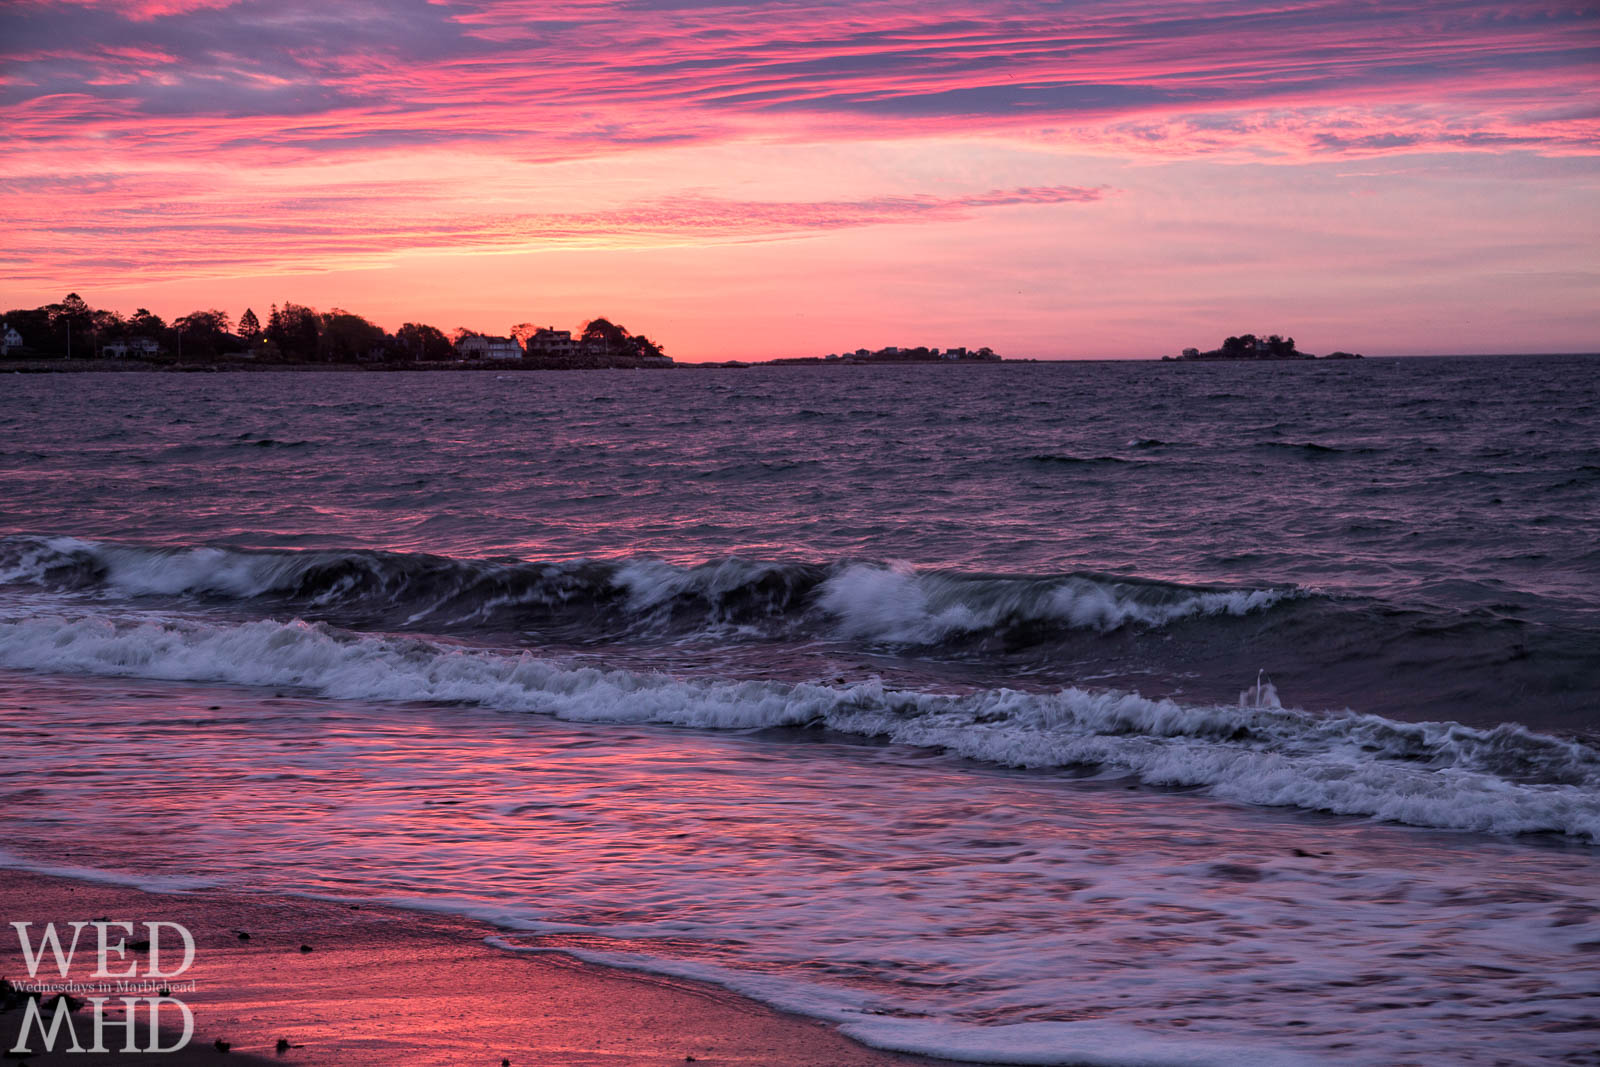 Dawn creates a pink sky over purple waves at Devereux beach in Marblehead